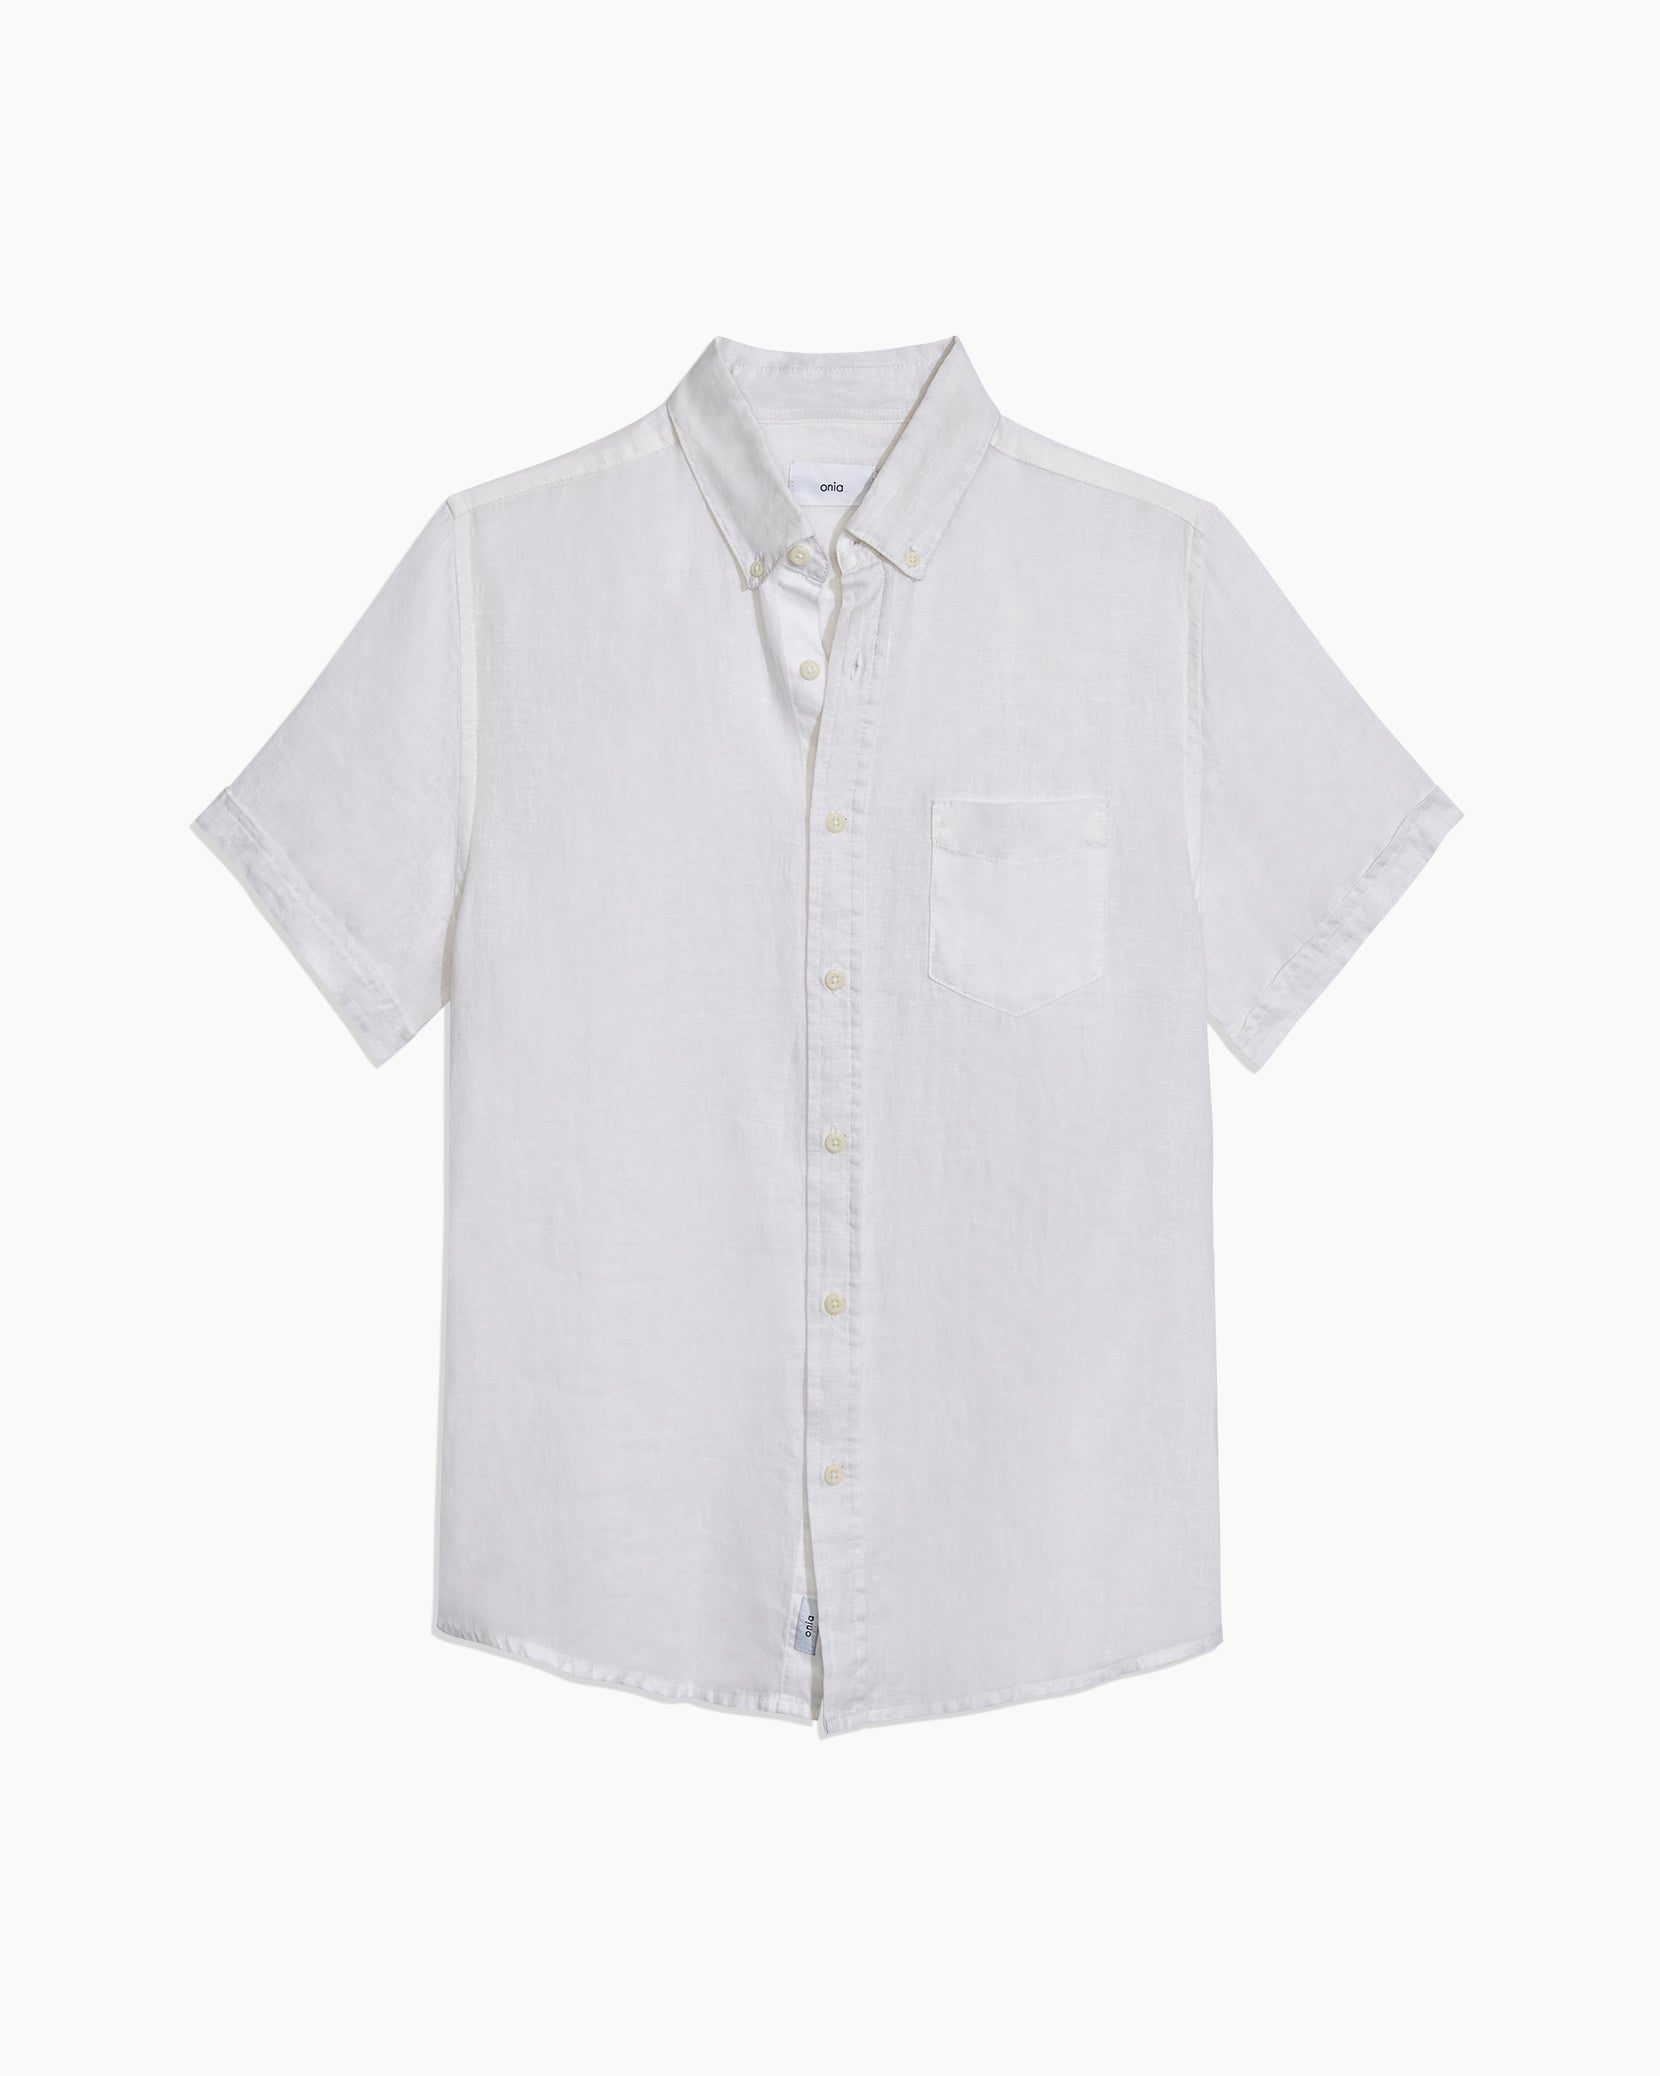 Stretch Linen Short Sleeve Shirt in White - 1 - Onia